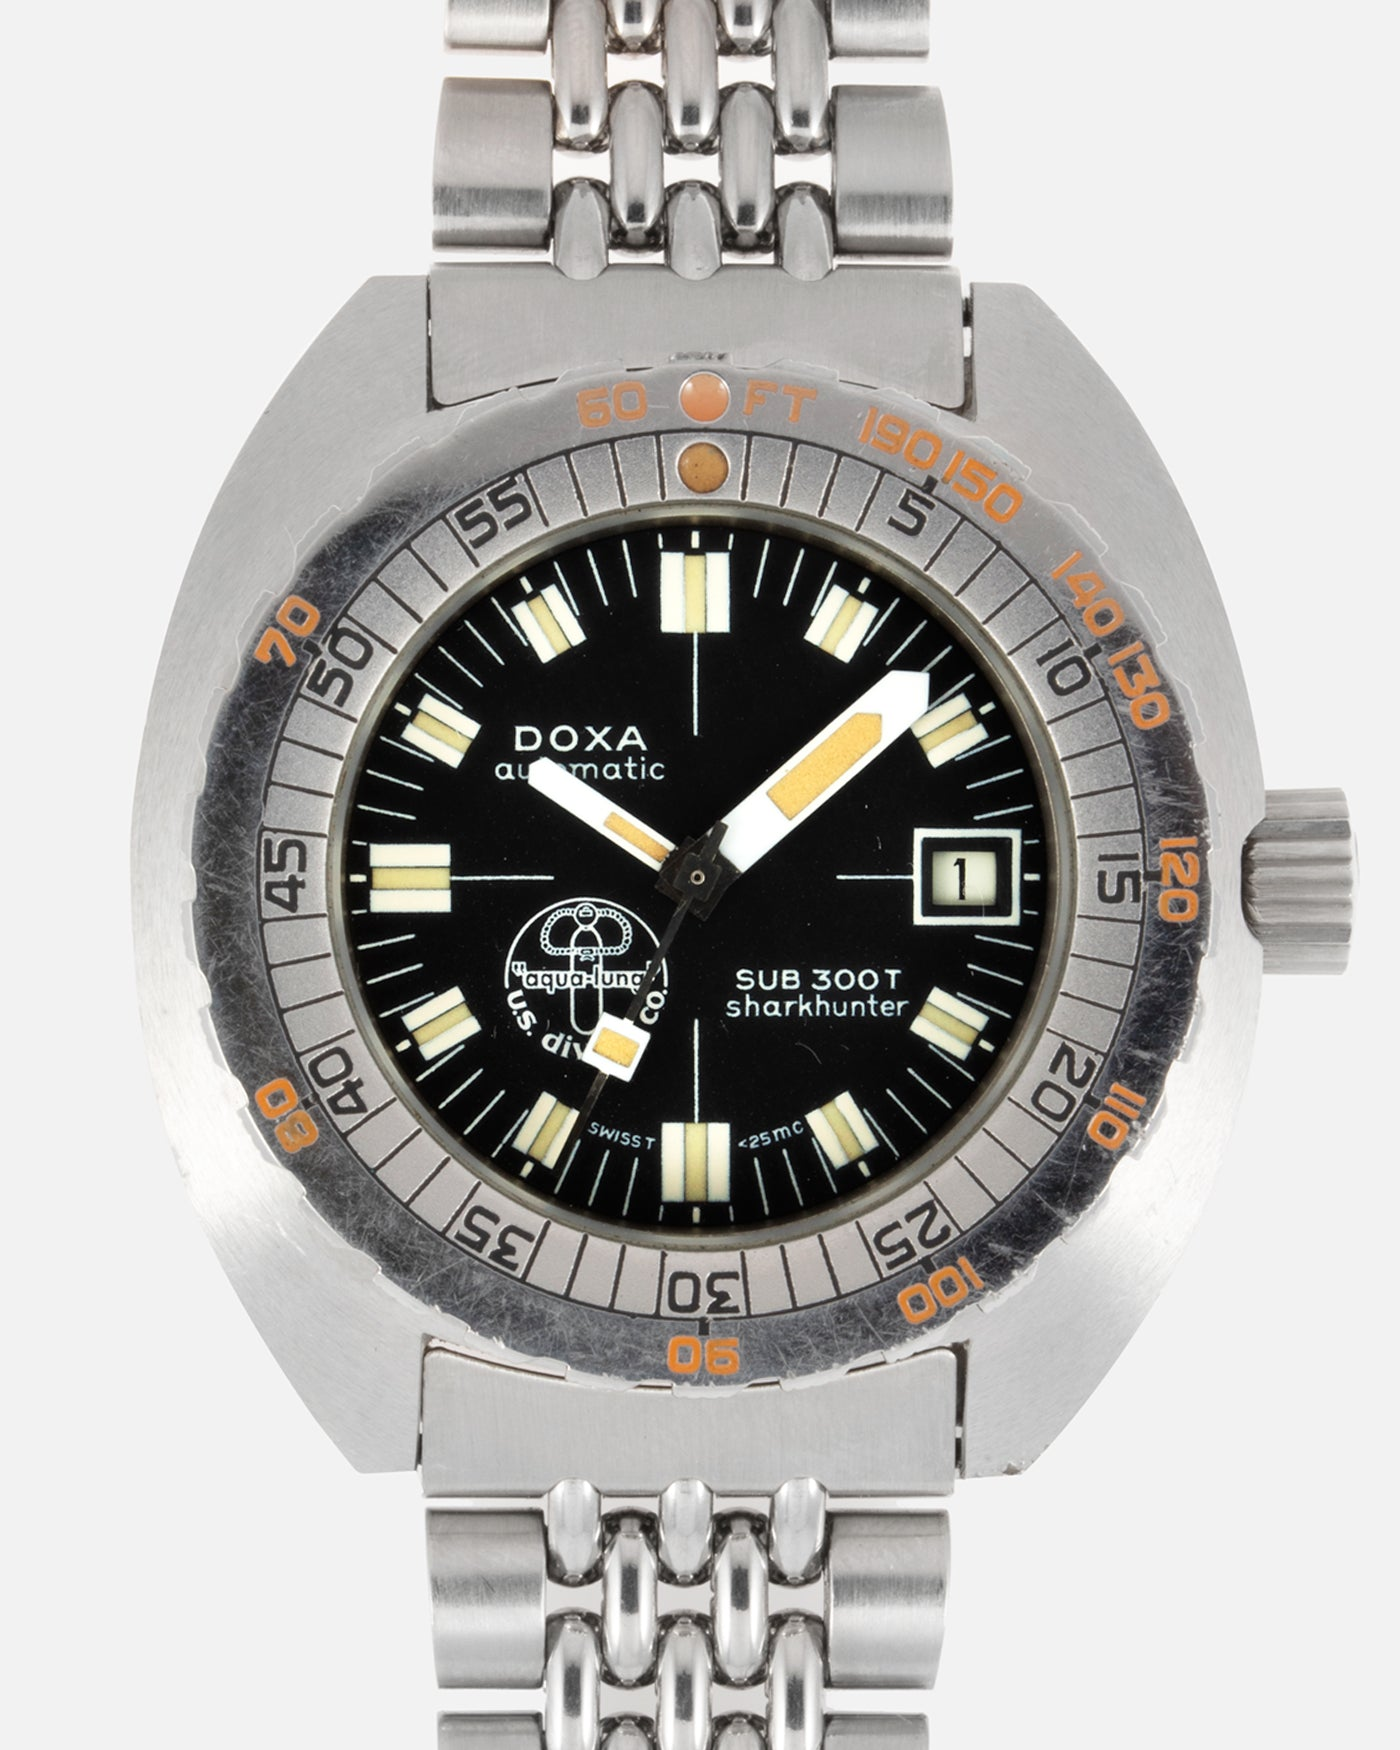 Doxa Sub 300T Sharkhunter Aqua Lung